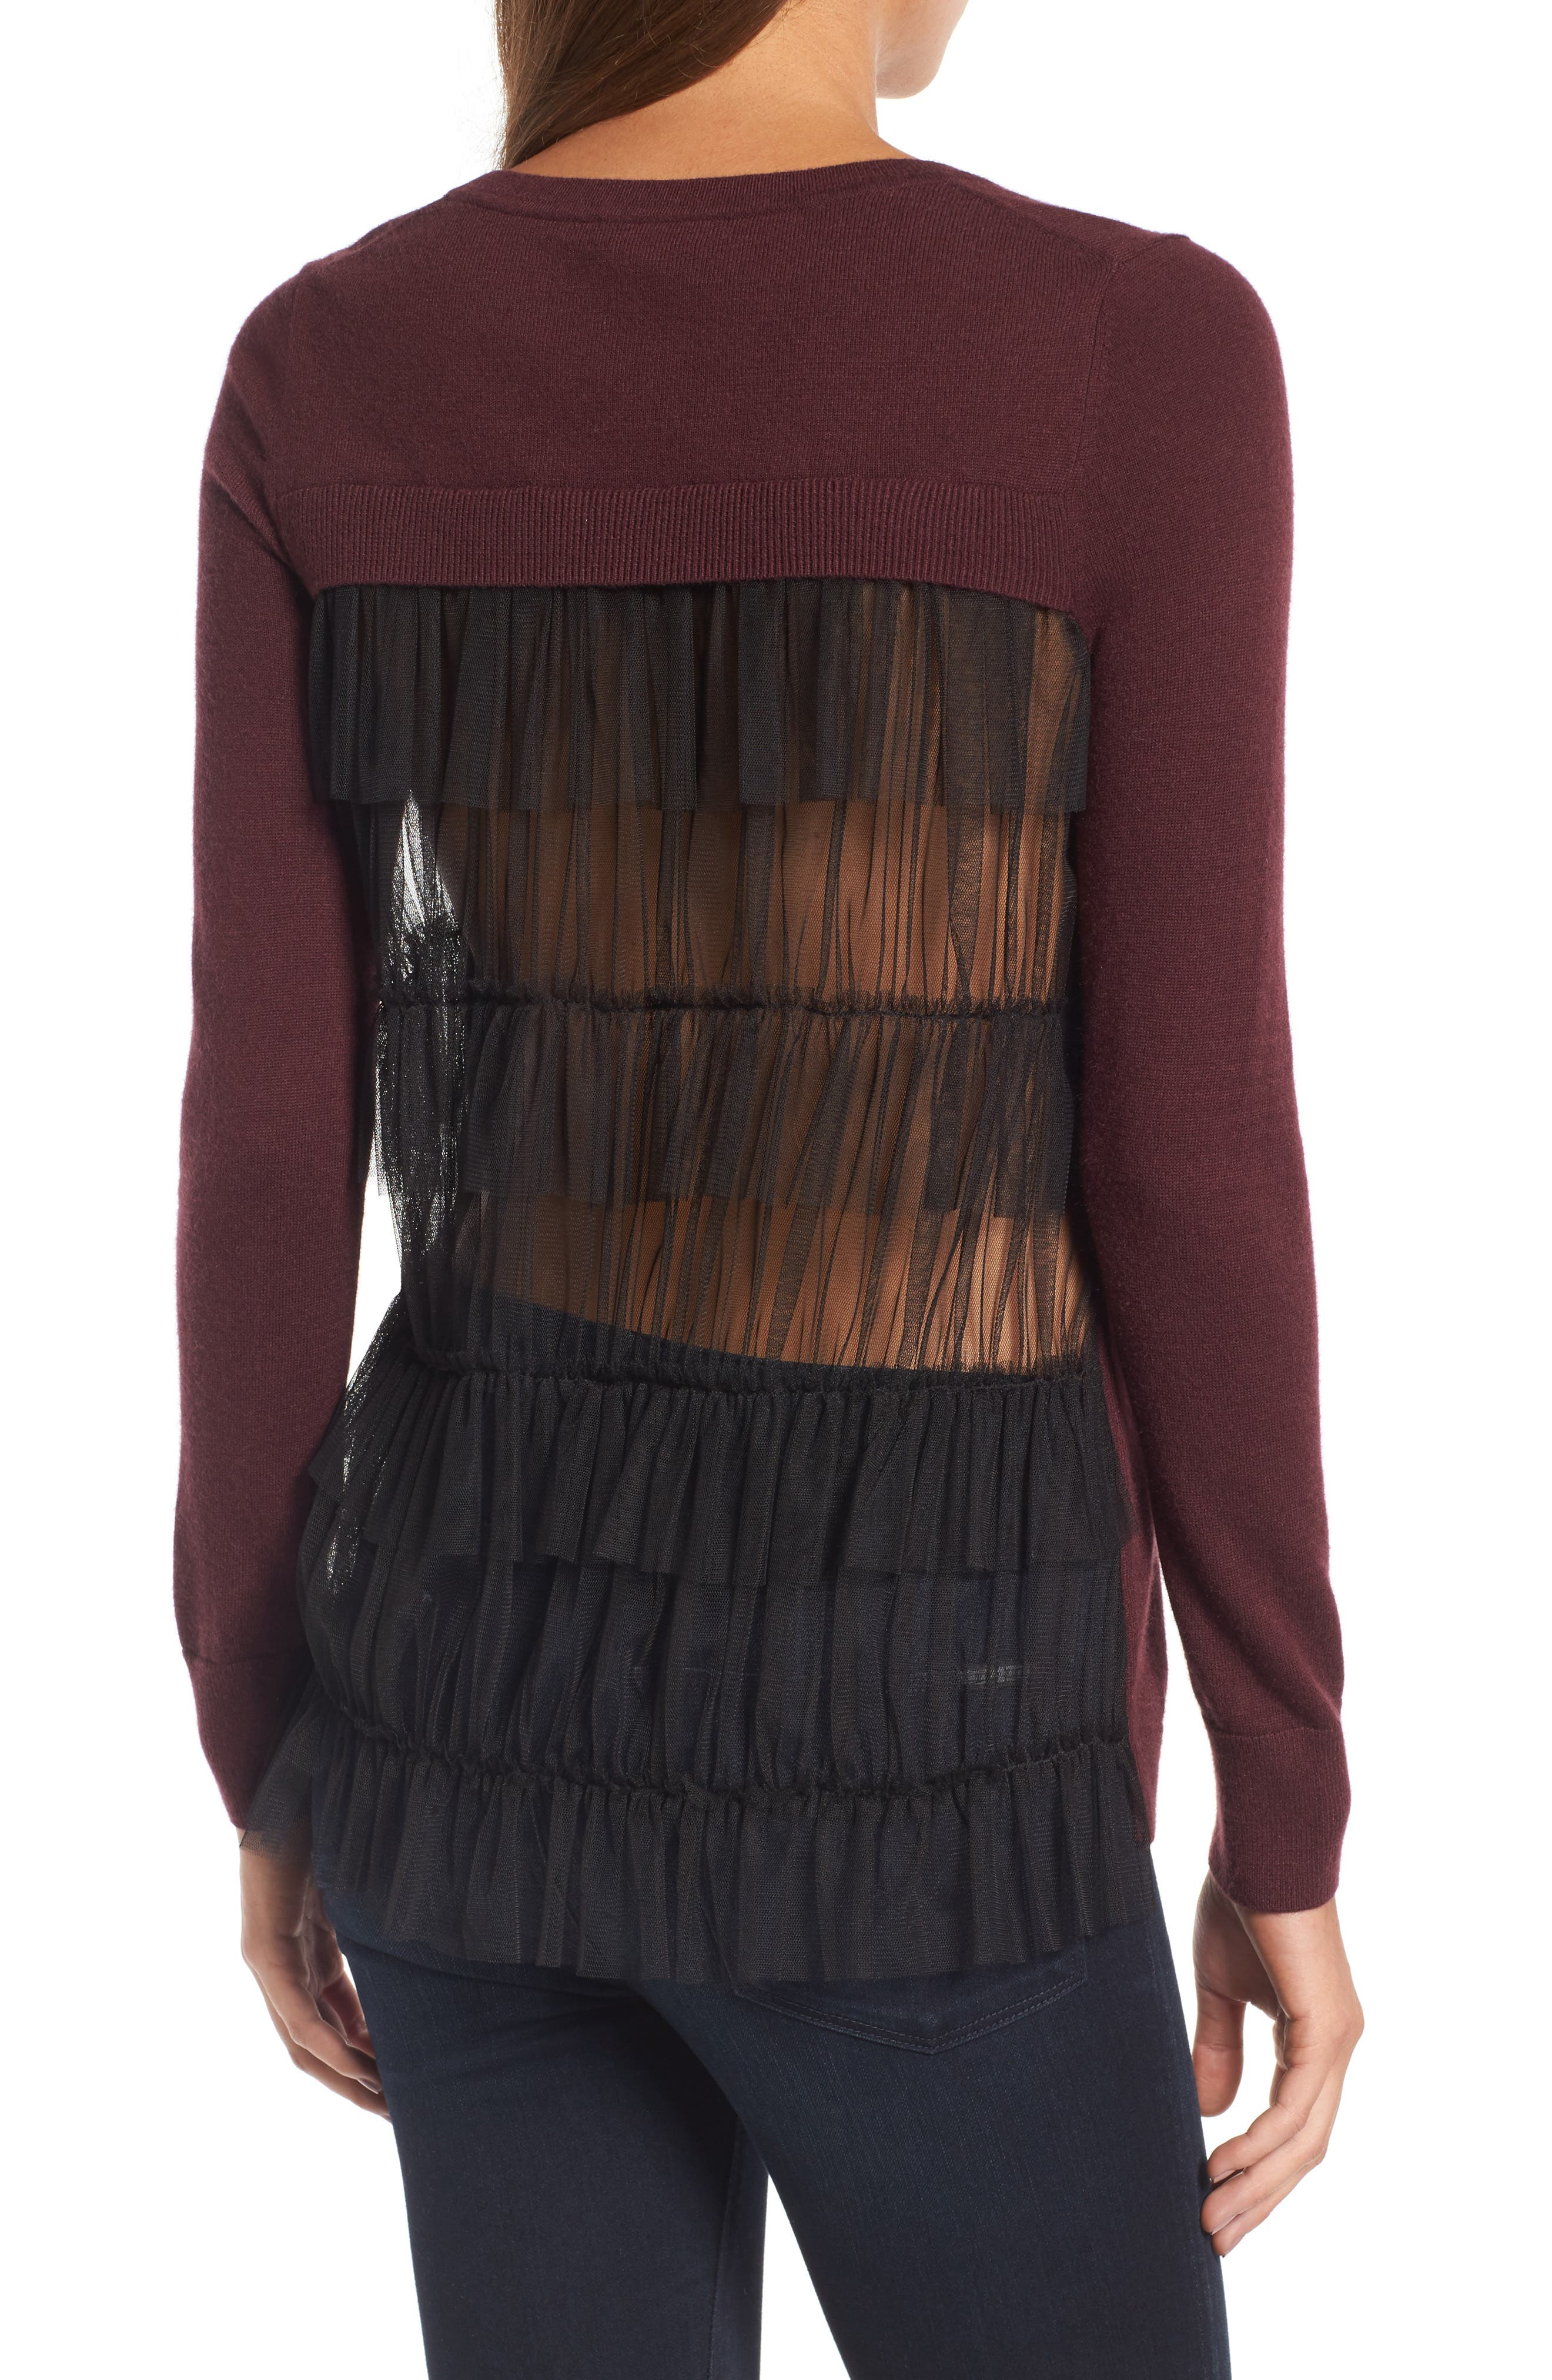 Main Image - Chelsea28 Tulle Back Sweater